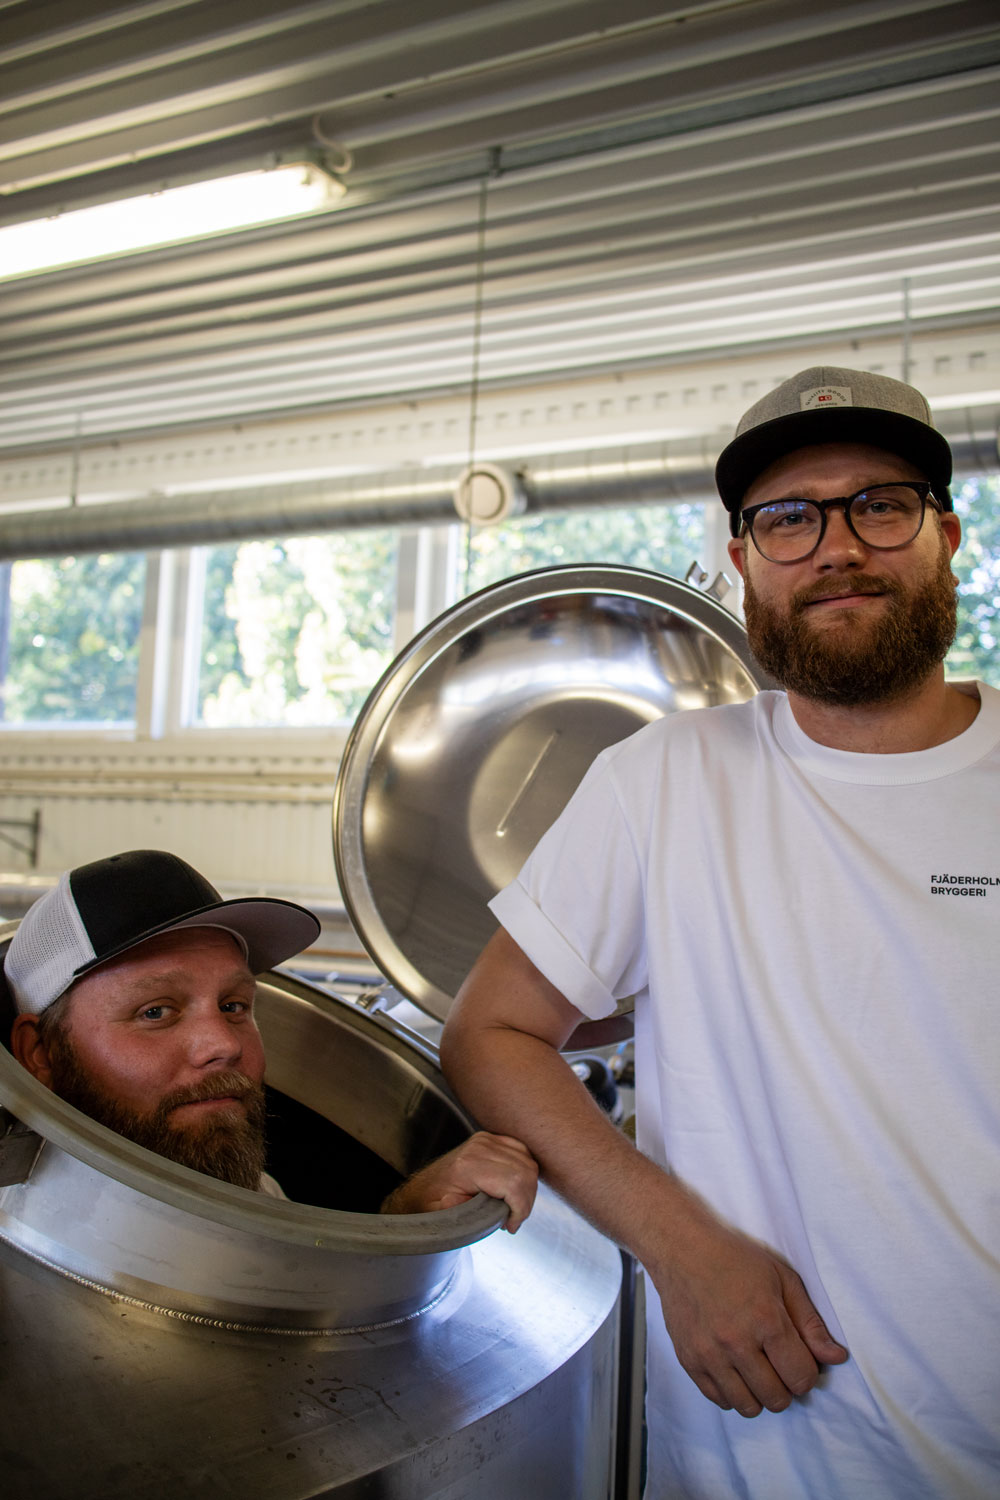 Andreas and Pelle standing in the brewery at the location in Bro.